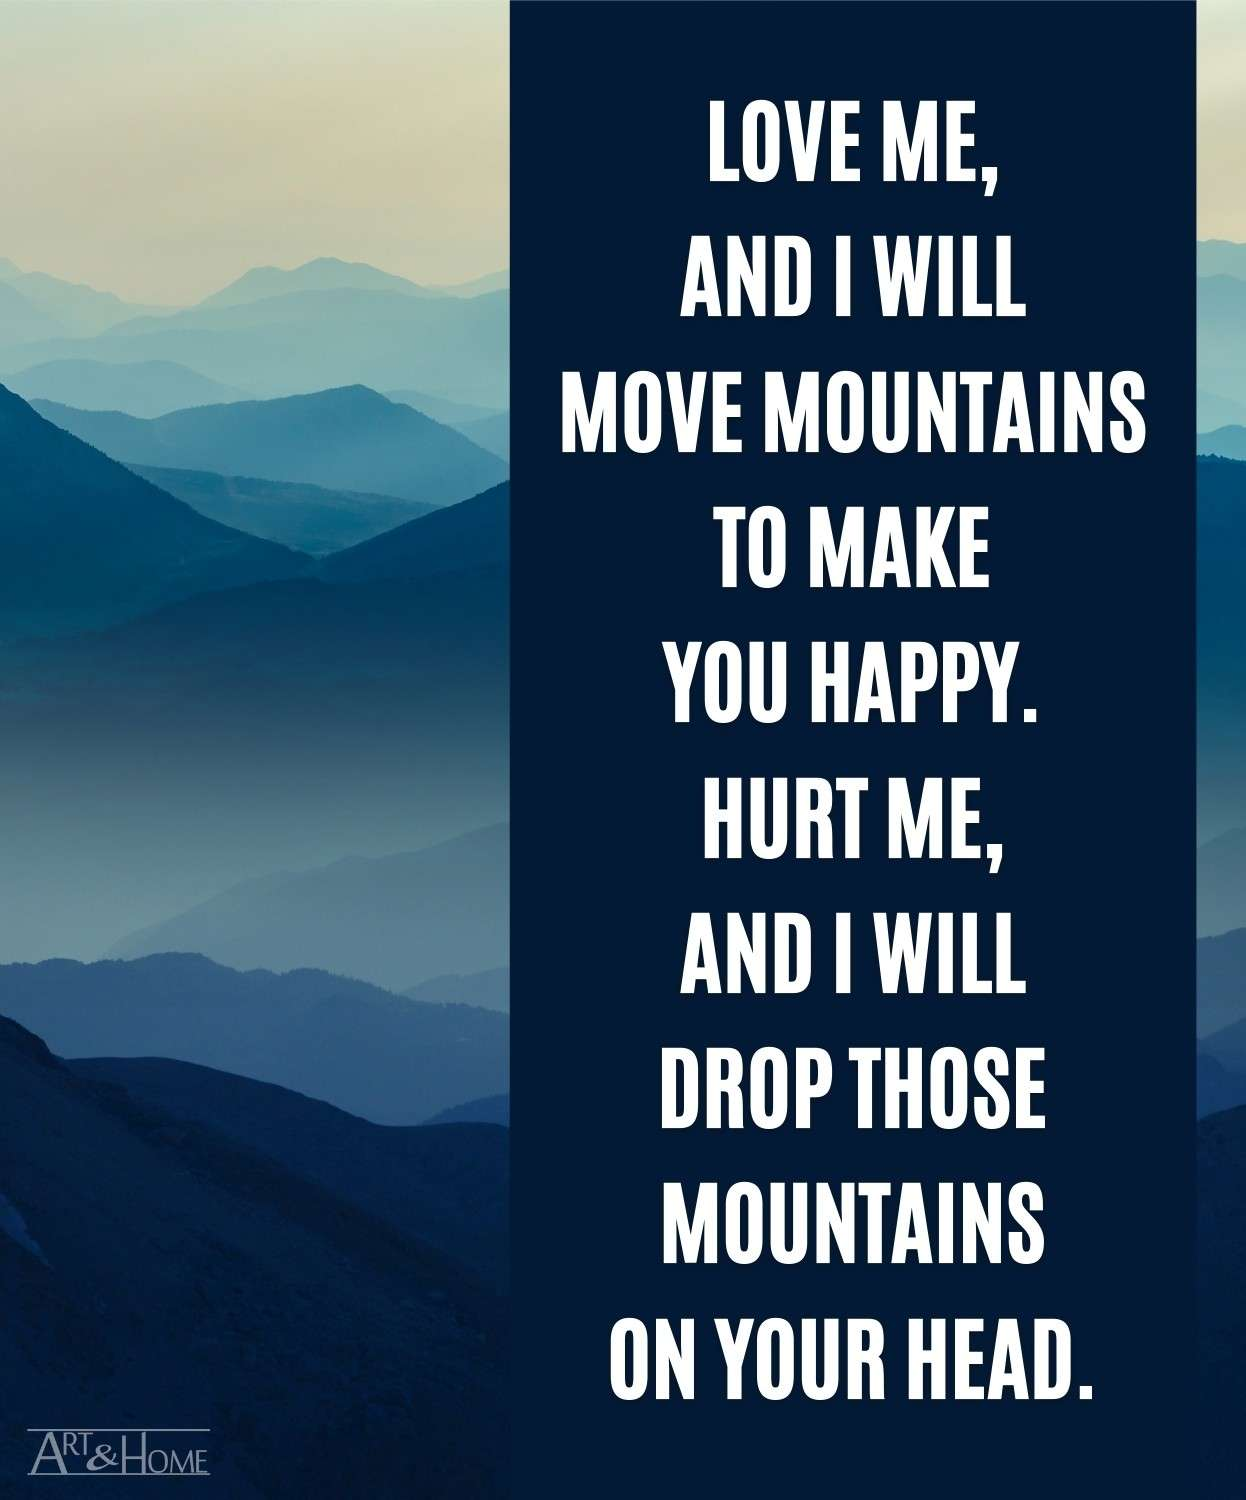 Funny Love Quote About Moving Mountains